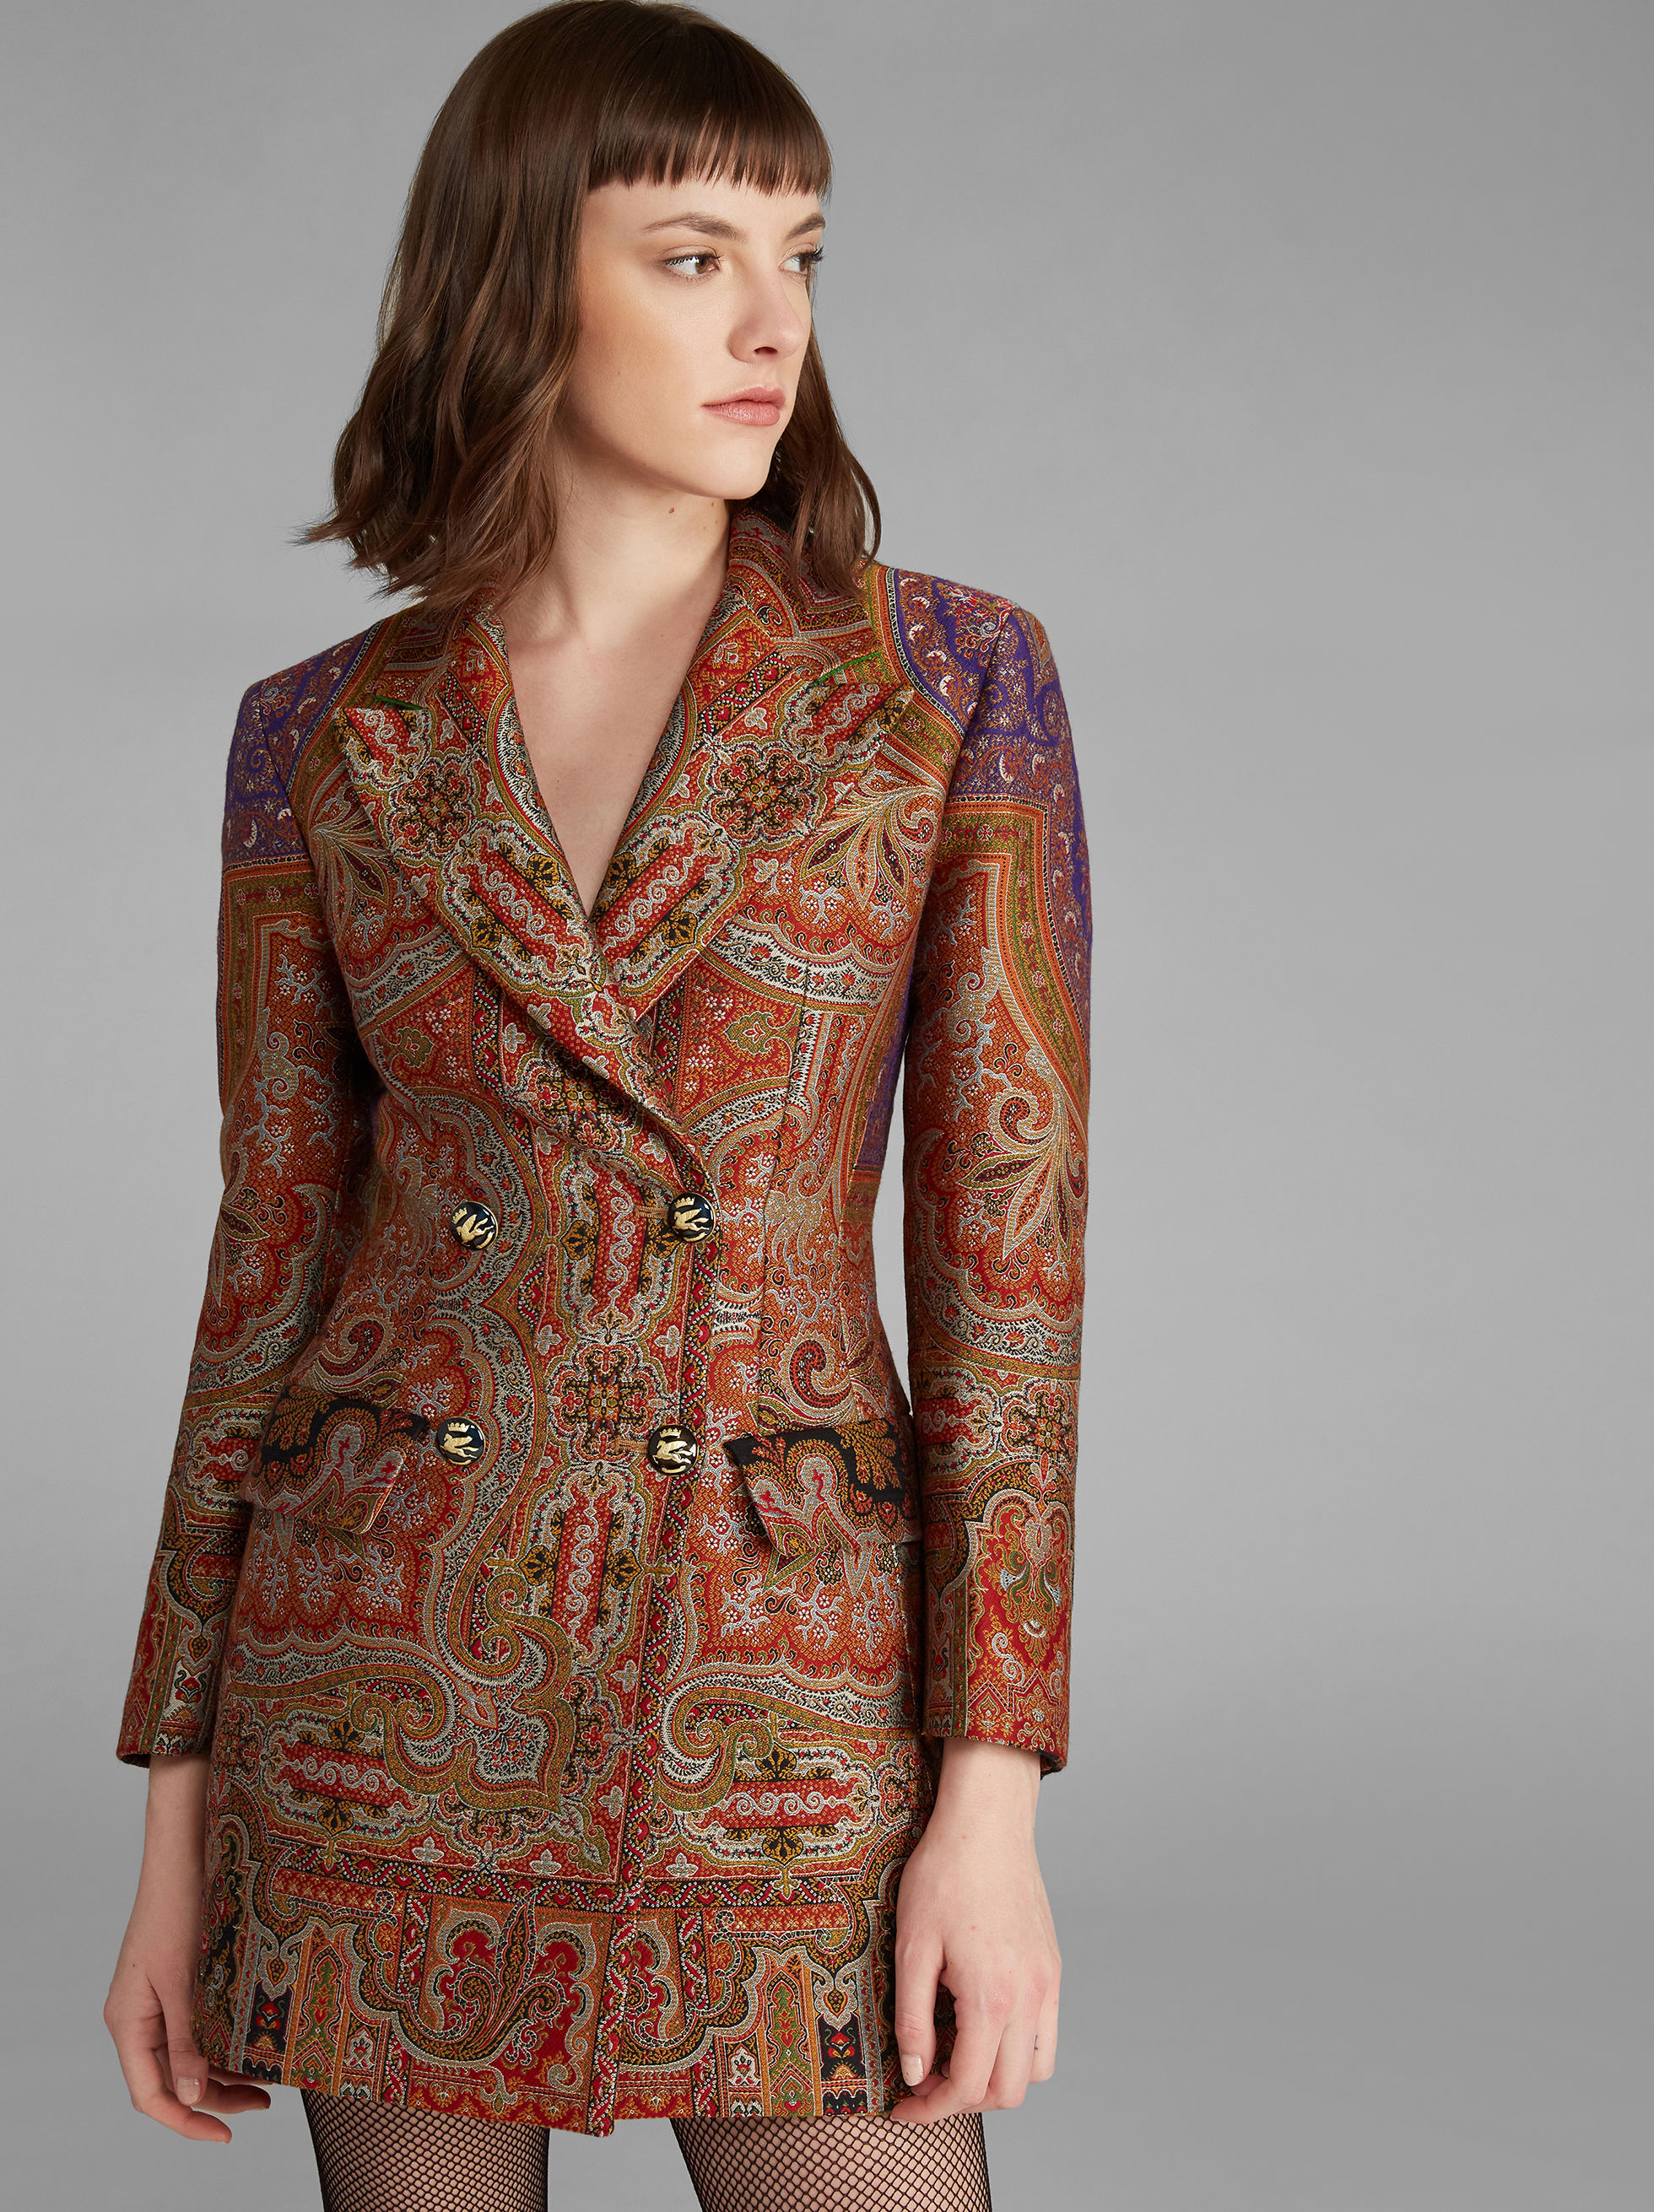 PAISLEY JACQUARD DOUBLE-BREASTED JACKET